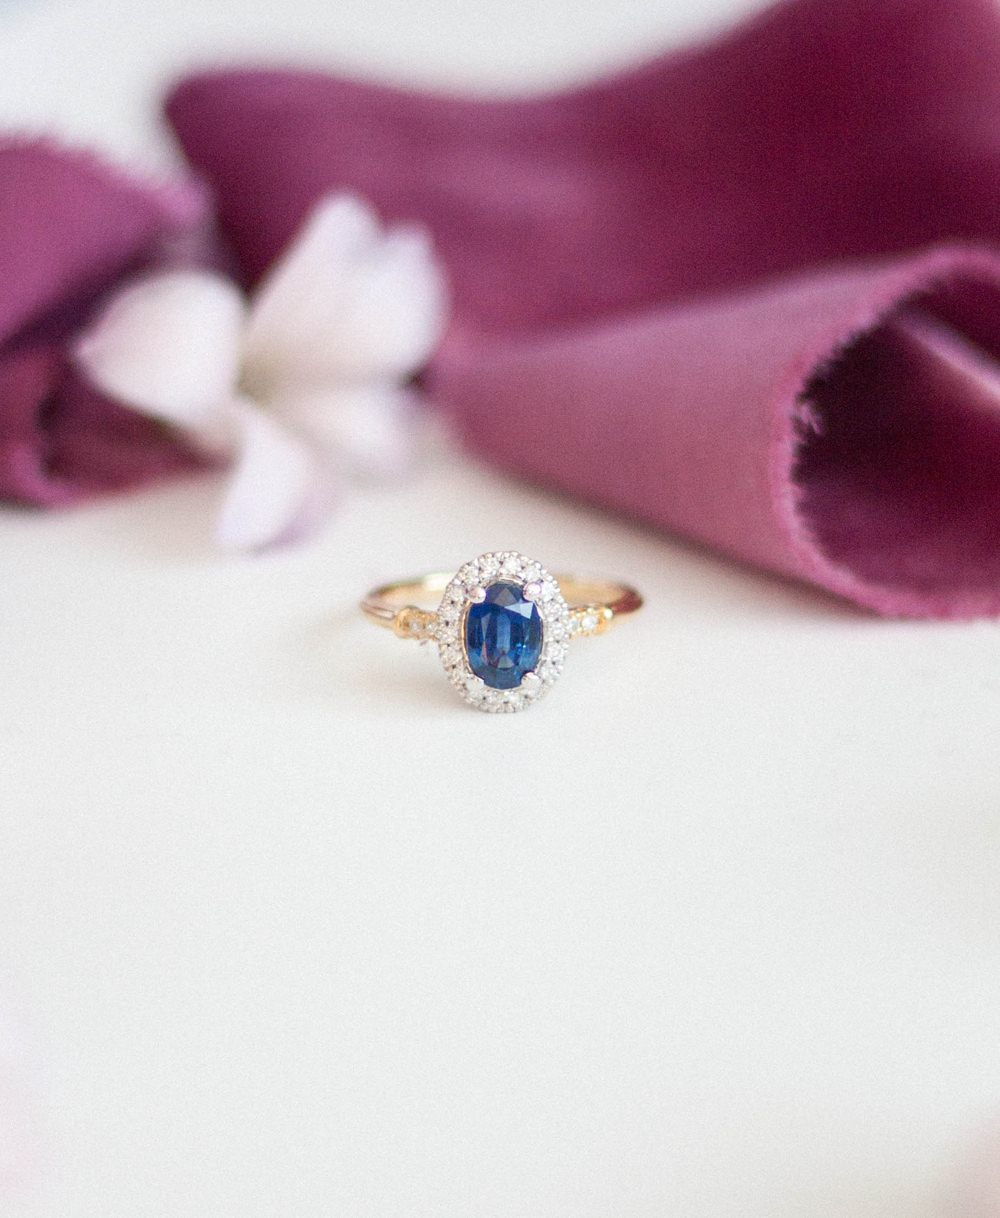 Sapphire Gold Halo Diamond Vintage Alternative Engagement Rings Coloured Gem Wedding